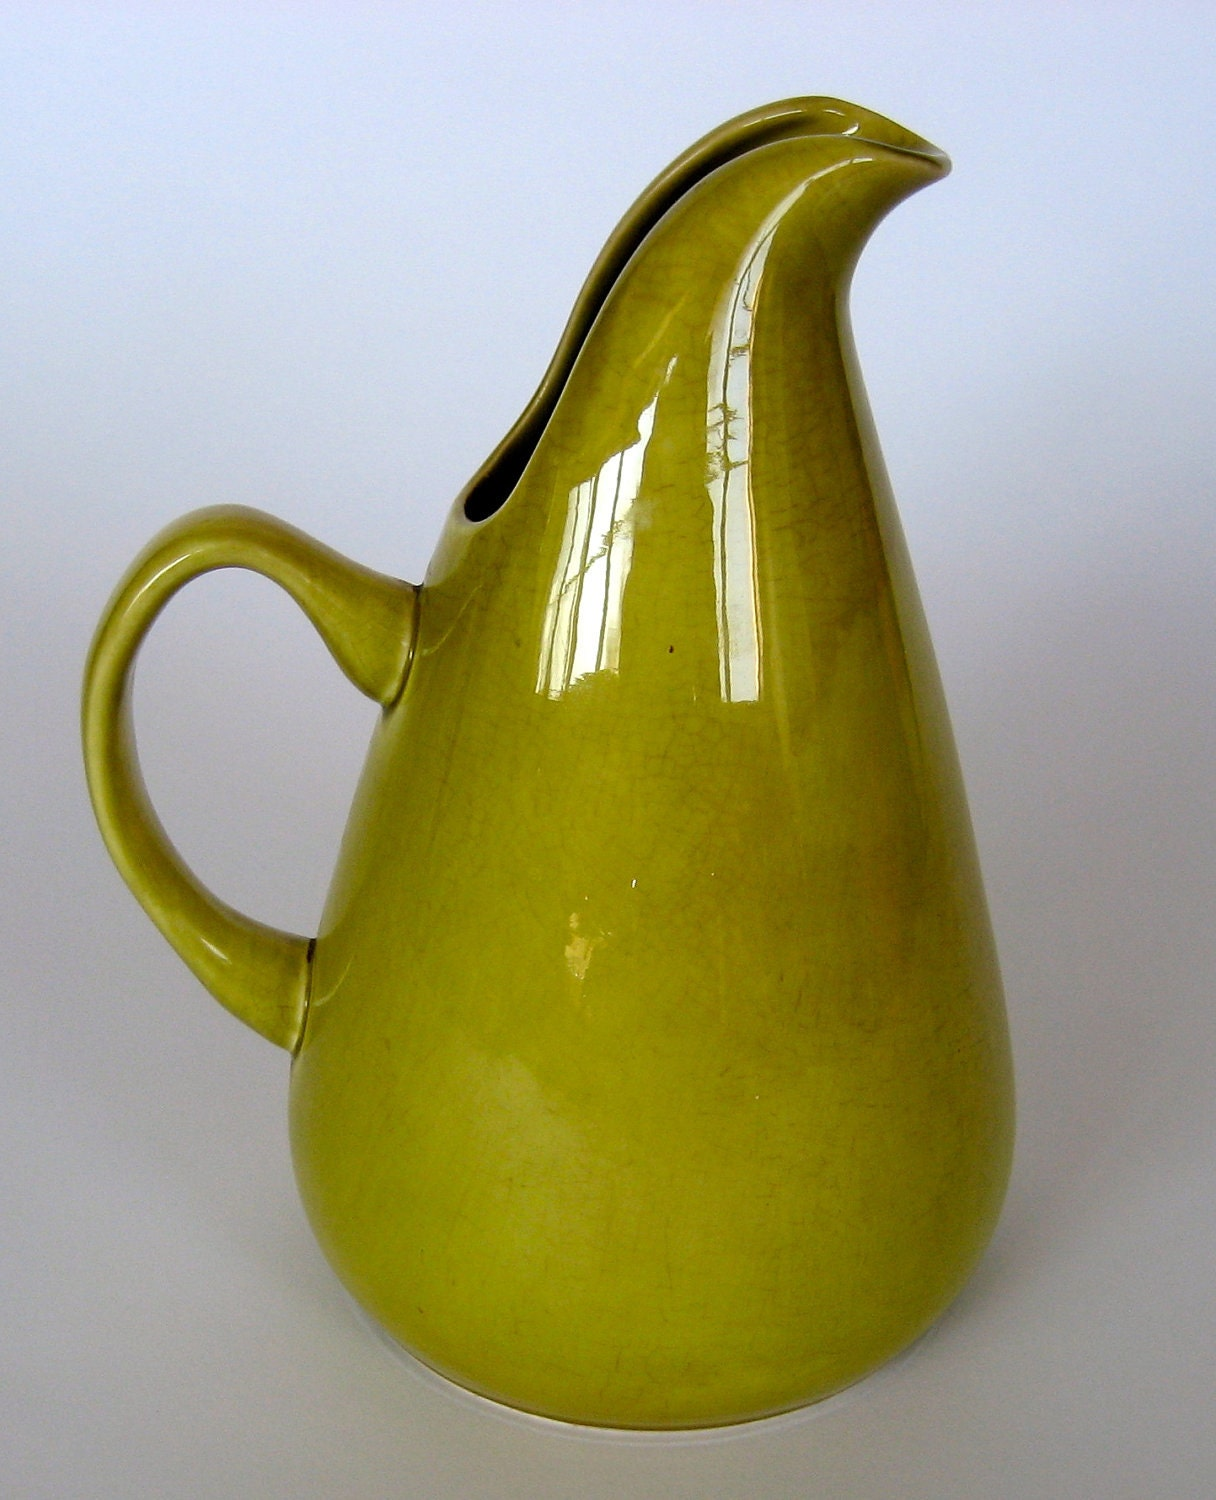 Russel wright american modern pitcher by ilivemodern on etsy - Russel wright pitcher ...